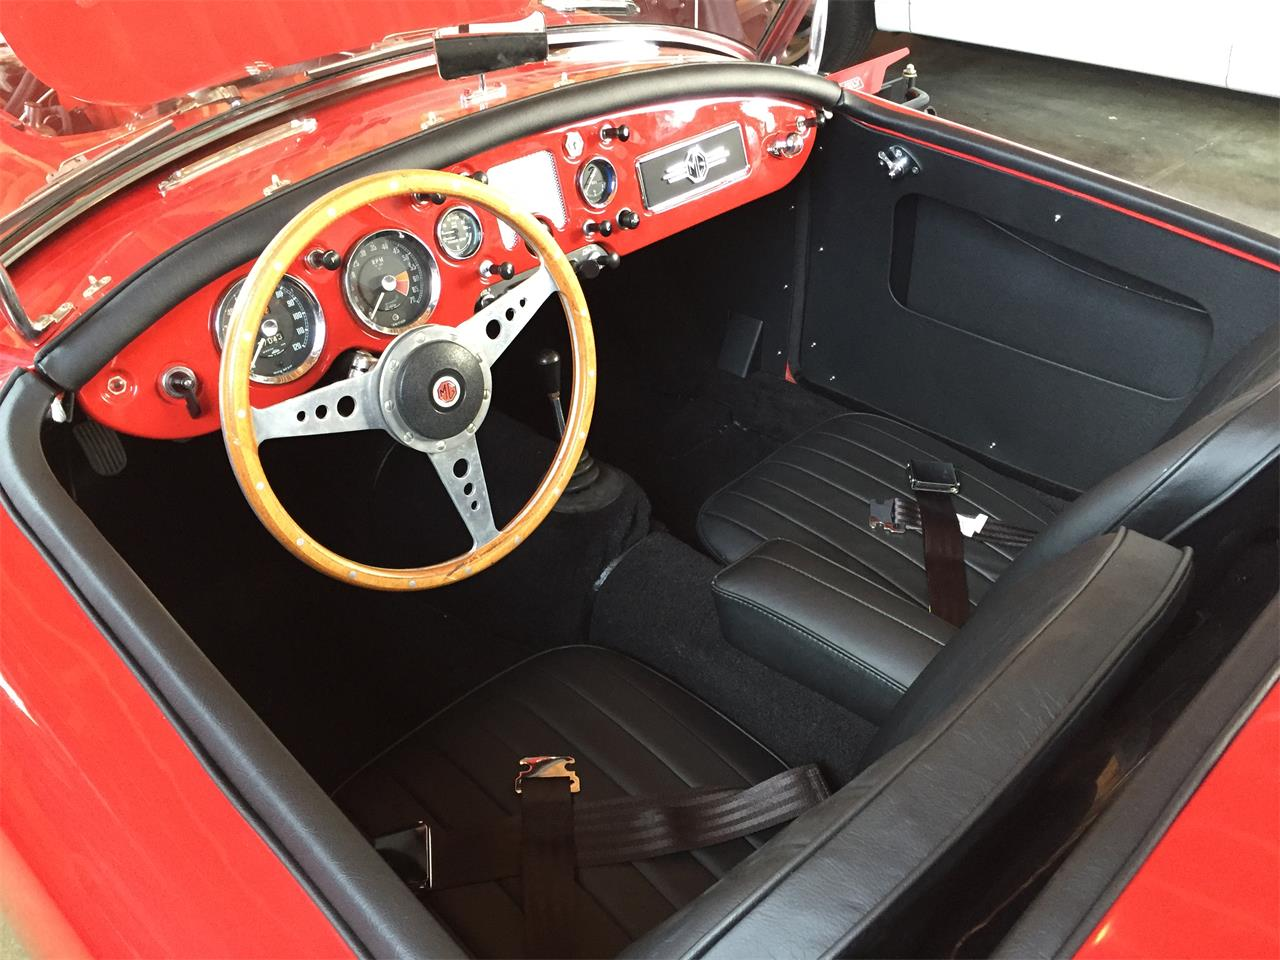 Large Picture of Classic '58 MG MGA 1500 located in Montgomery Ohio - $22,800.00 Offered by a Private Seller - OZBH